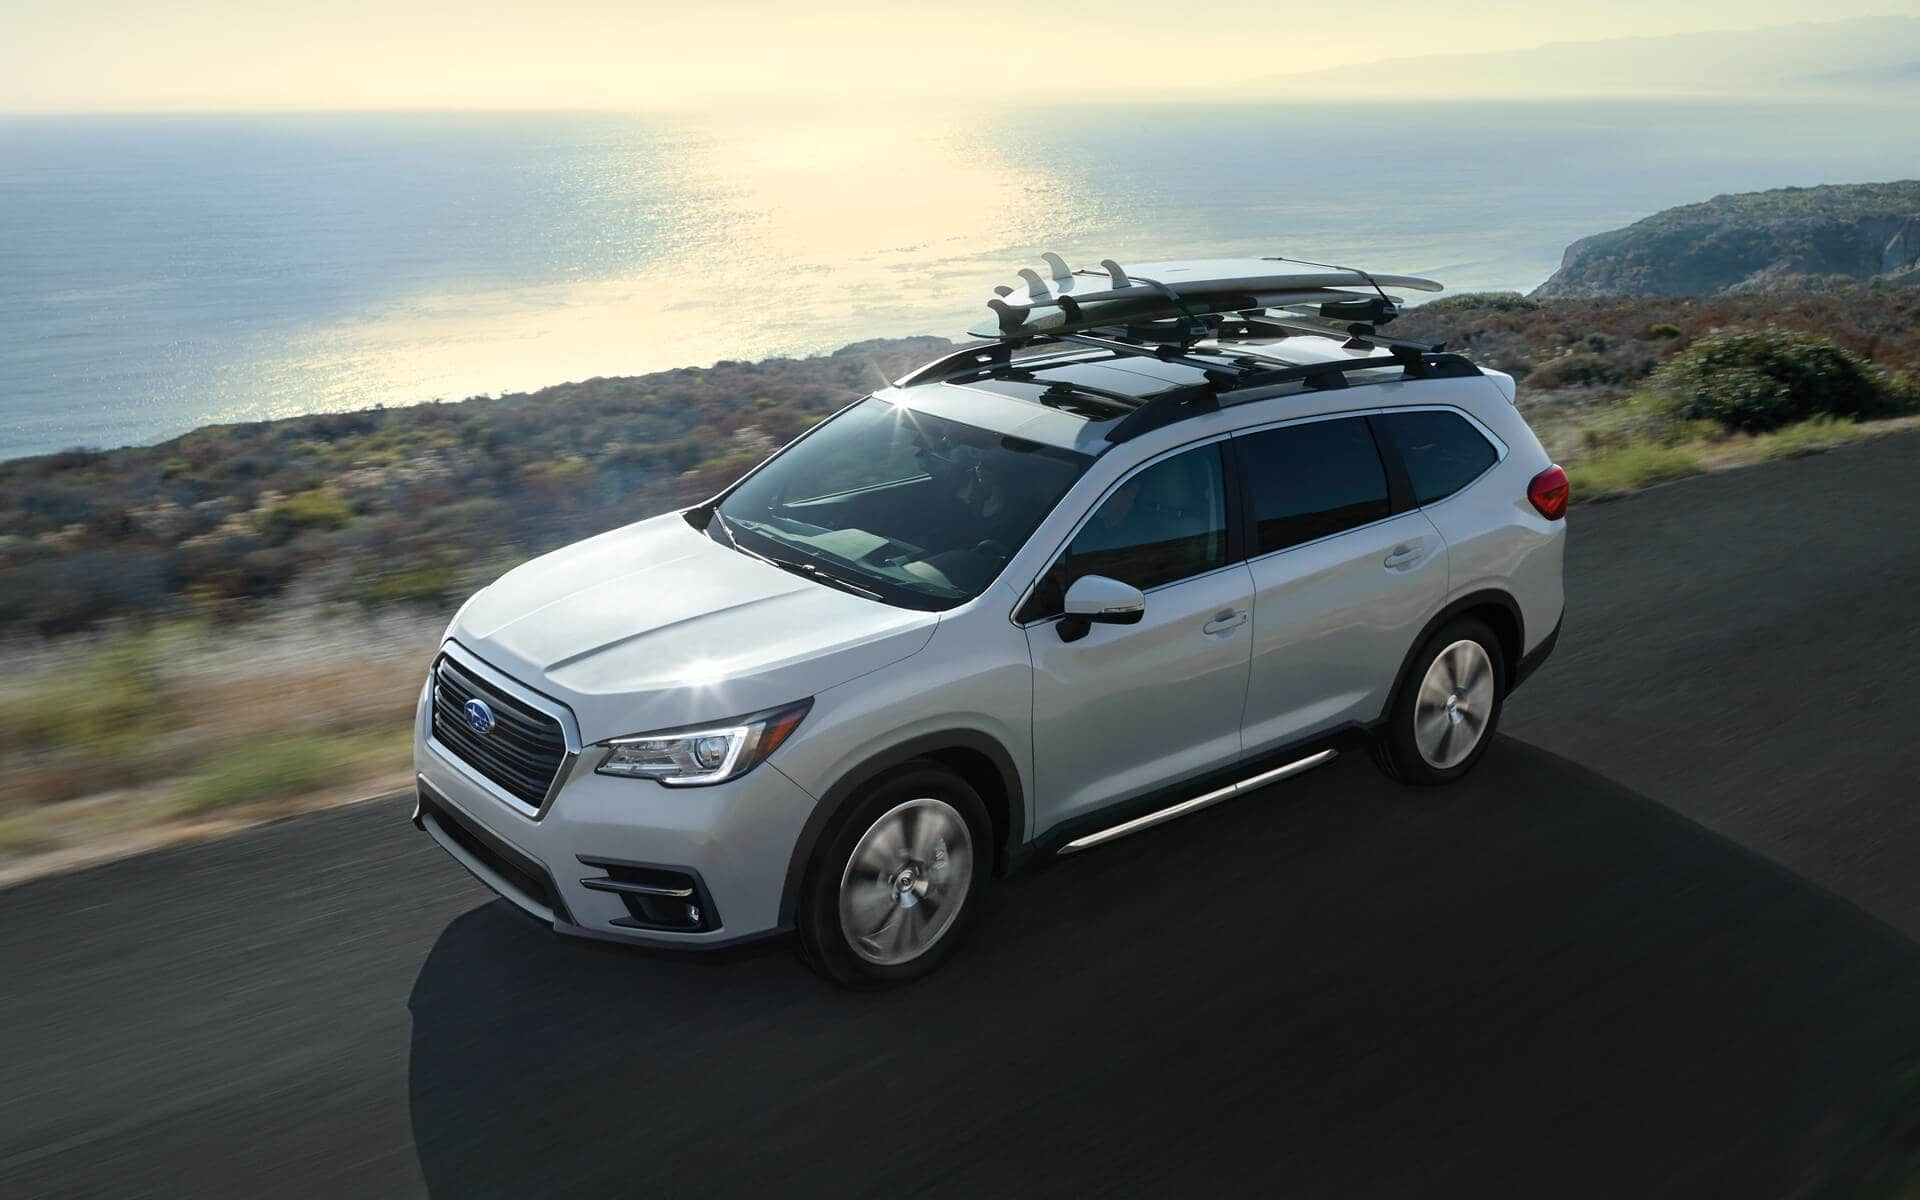 84 The 2019 Subaru Ascent Vs Honda Pilot Vs Toyota Highlander Overview by 2019 Subaru Ascent Vs Honda Pilot Vs Toyota Highlander